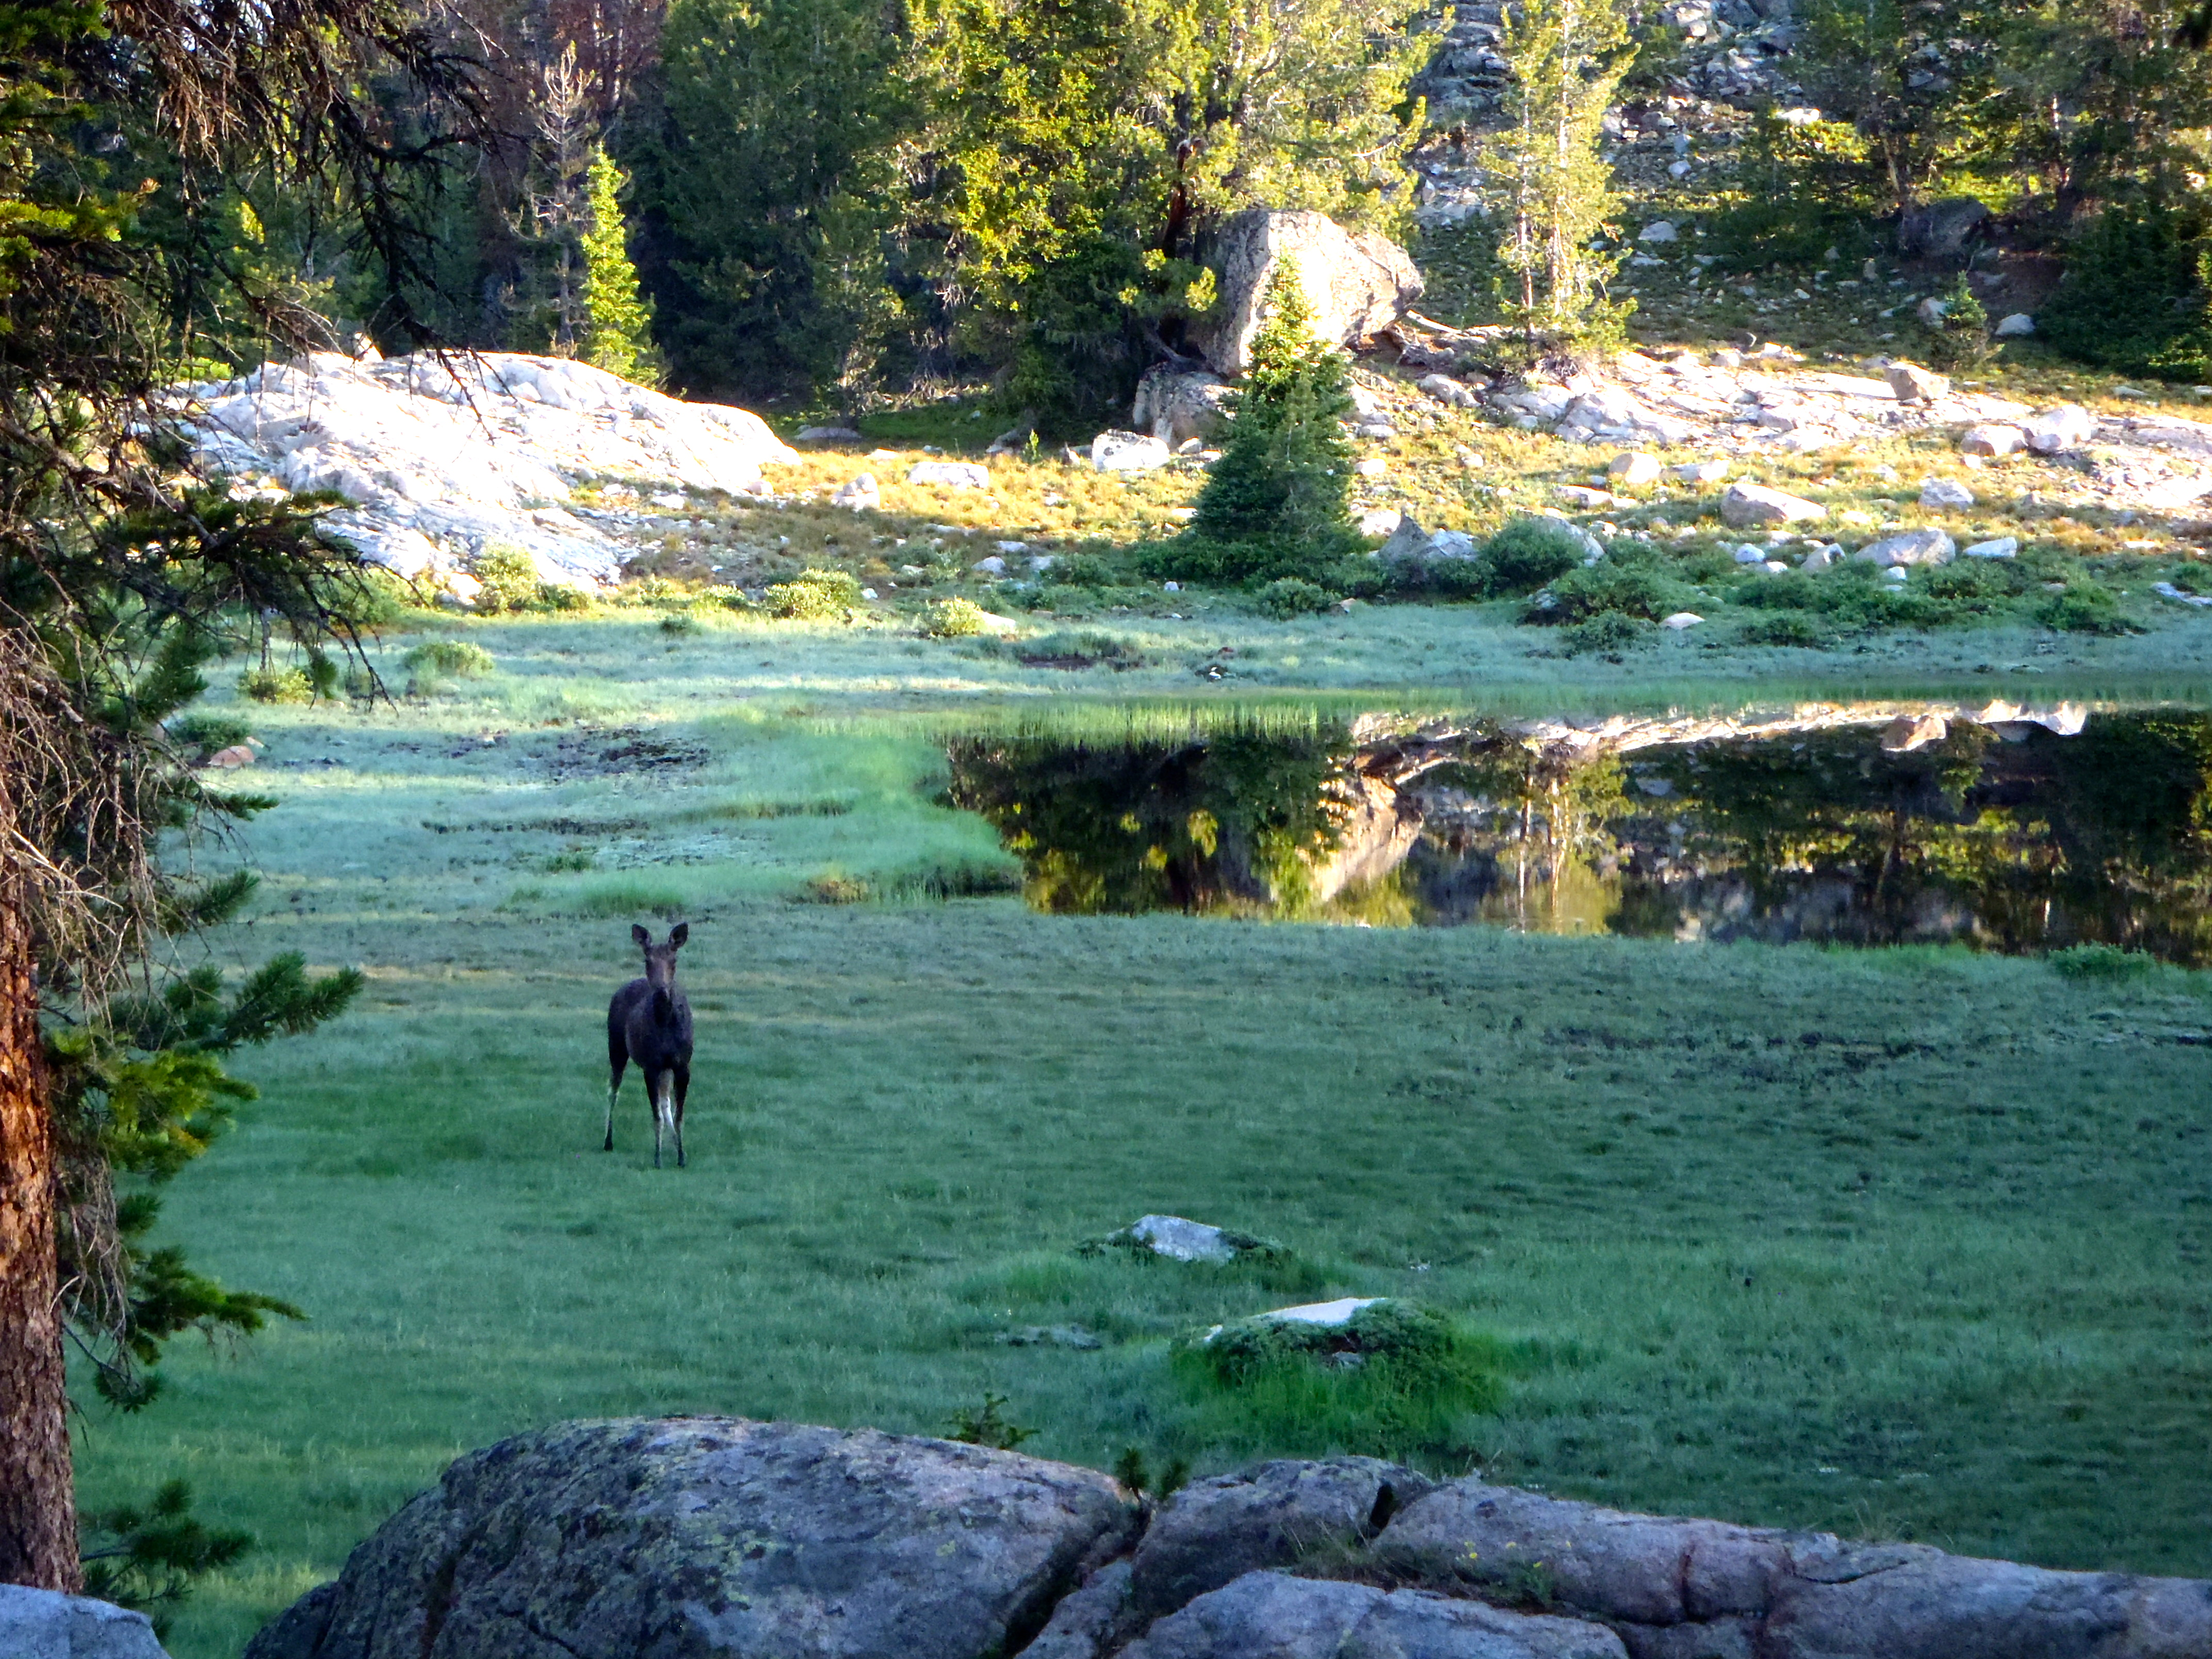 We saw this moose right after the sun came up.